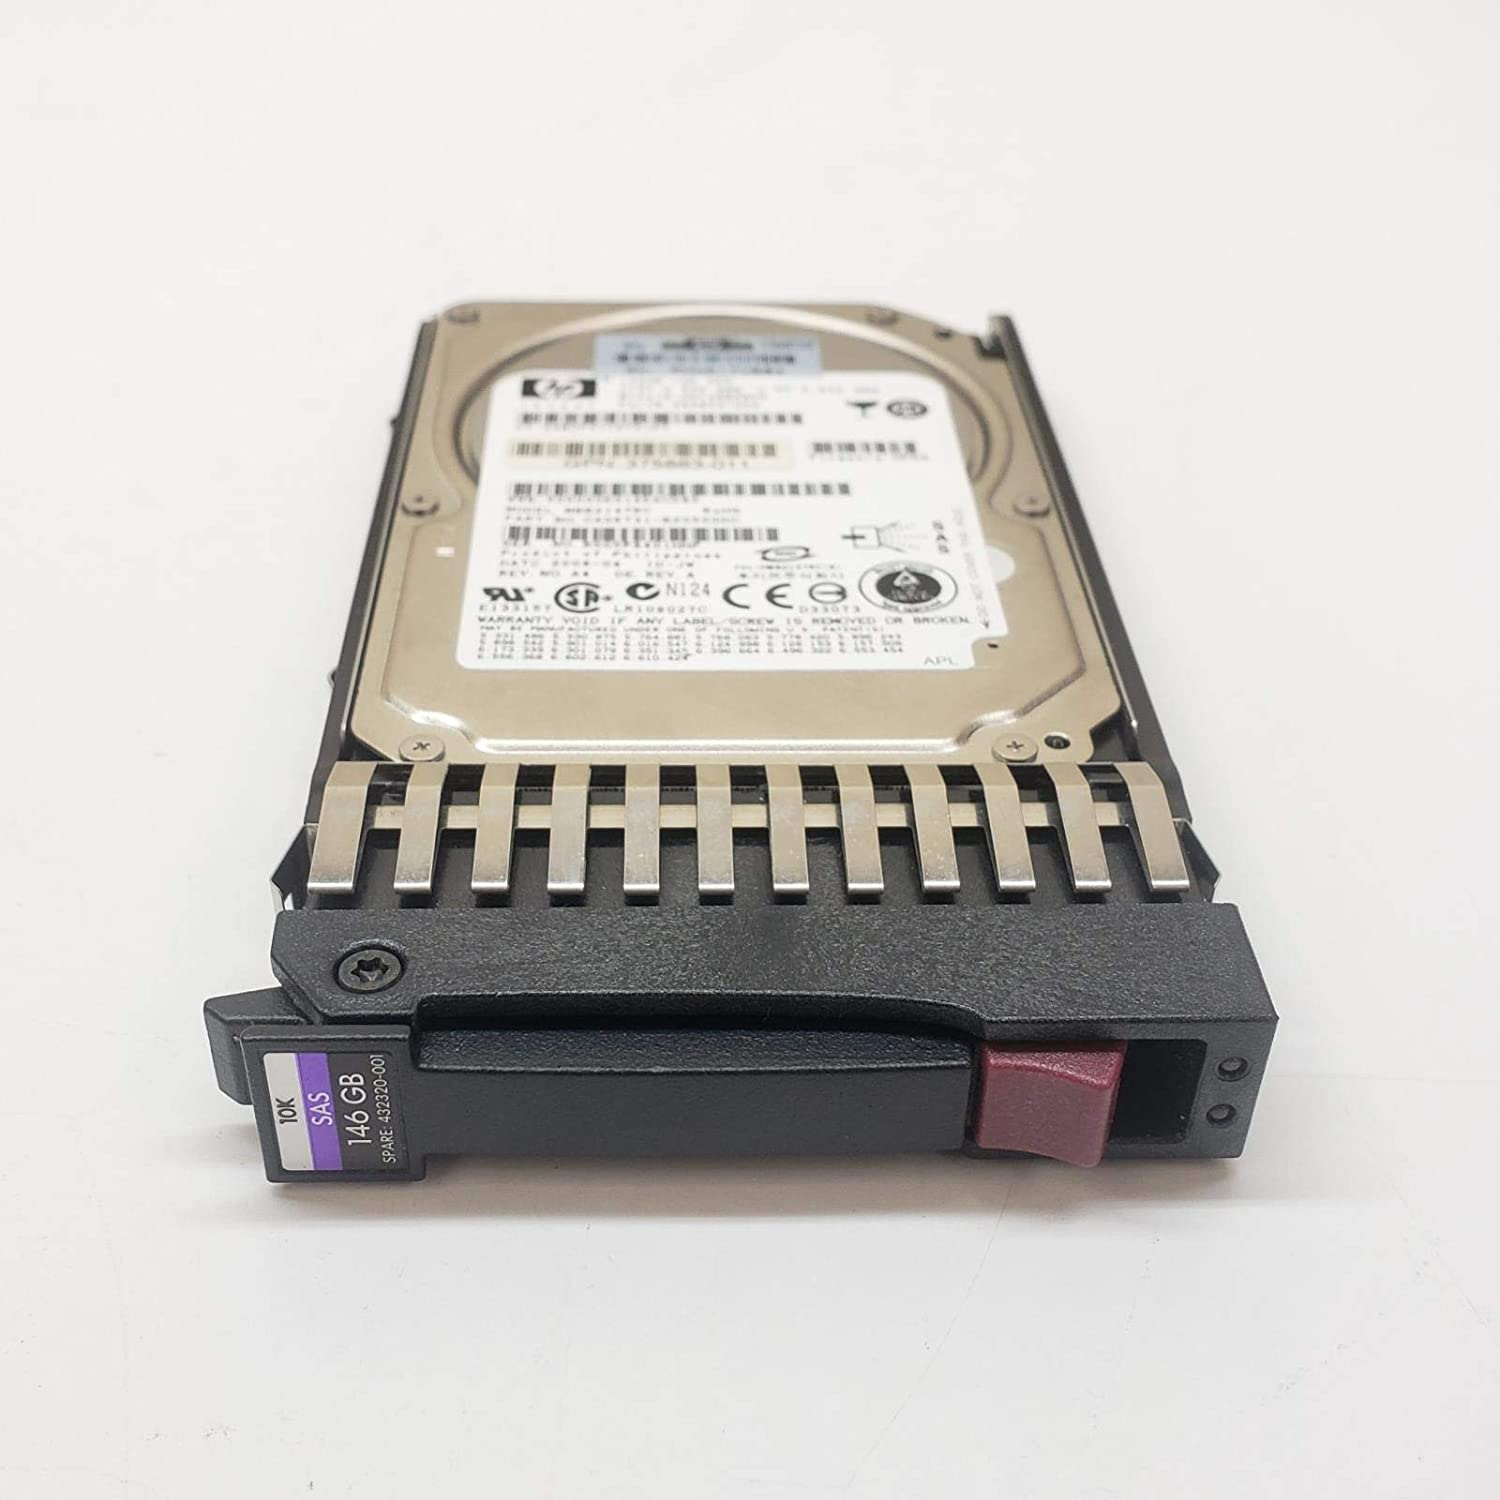 HP Proliant 432320-001 SAS Hard Drive 146GB 10K 2.5